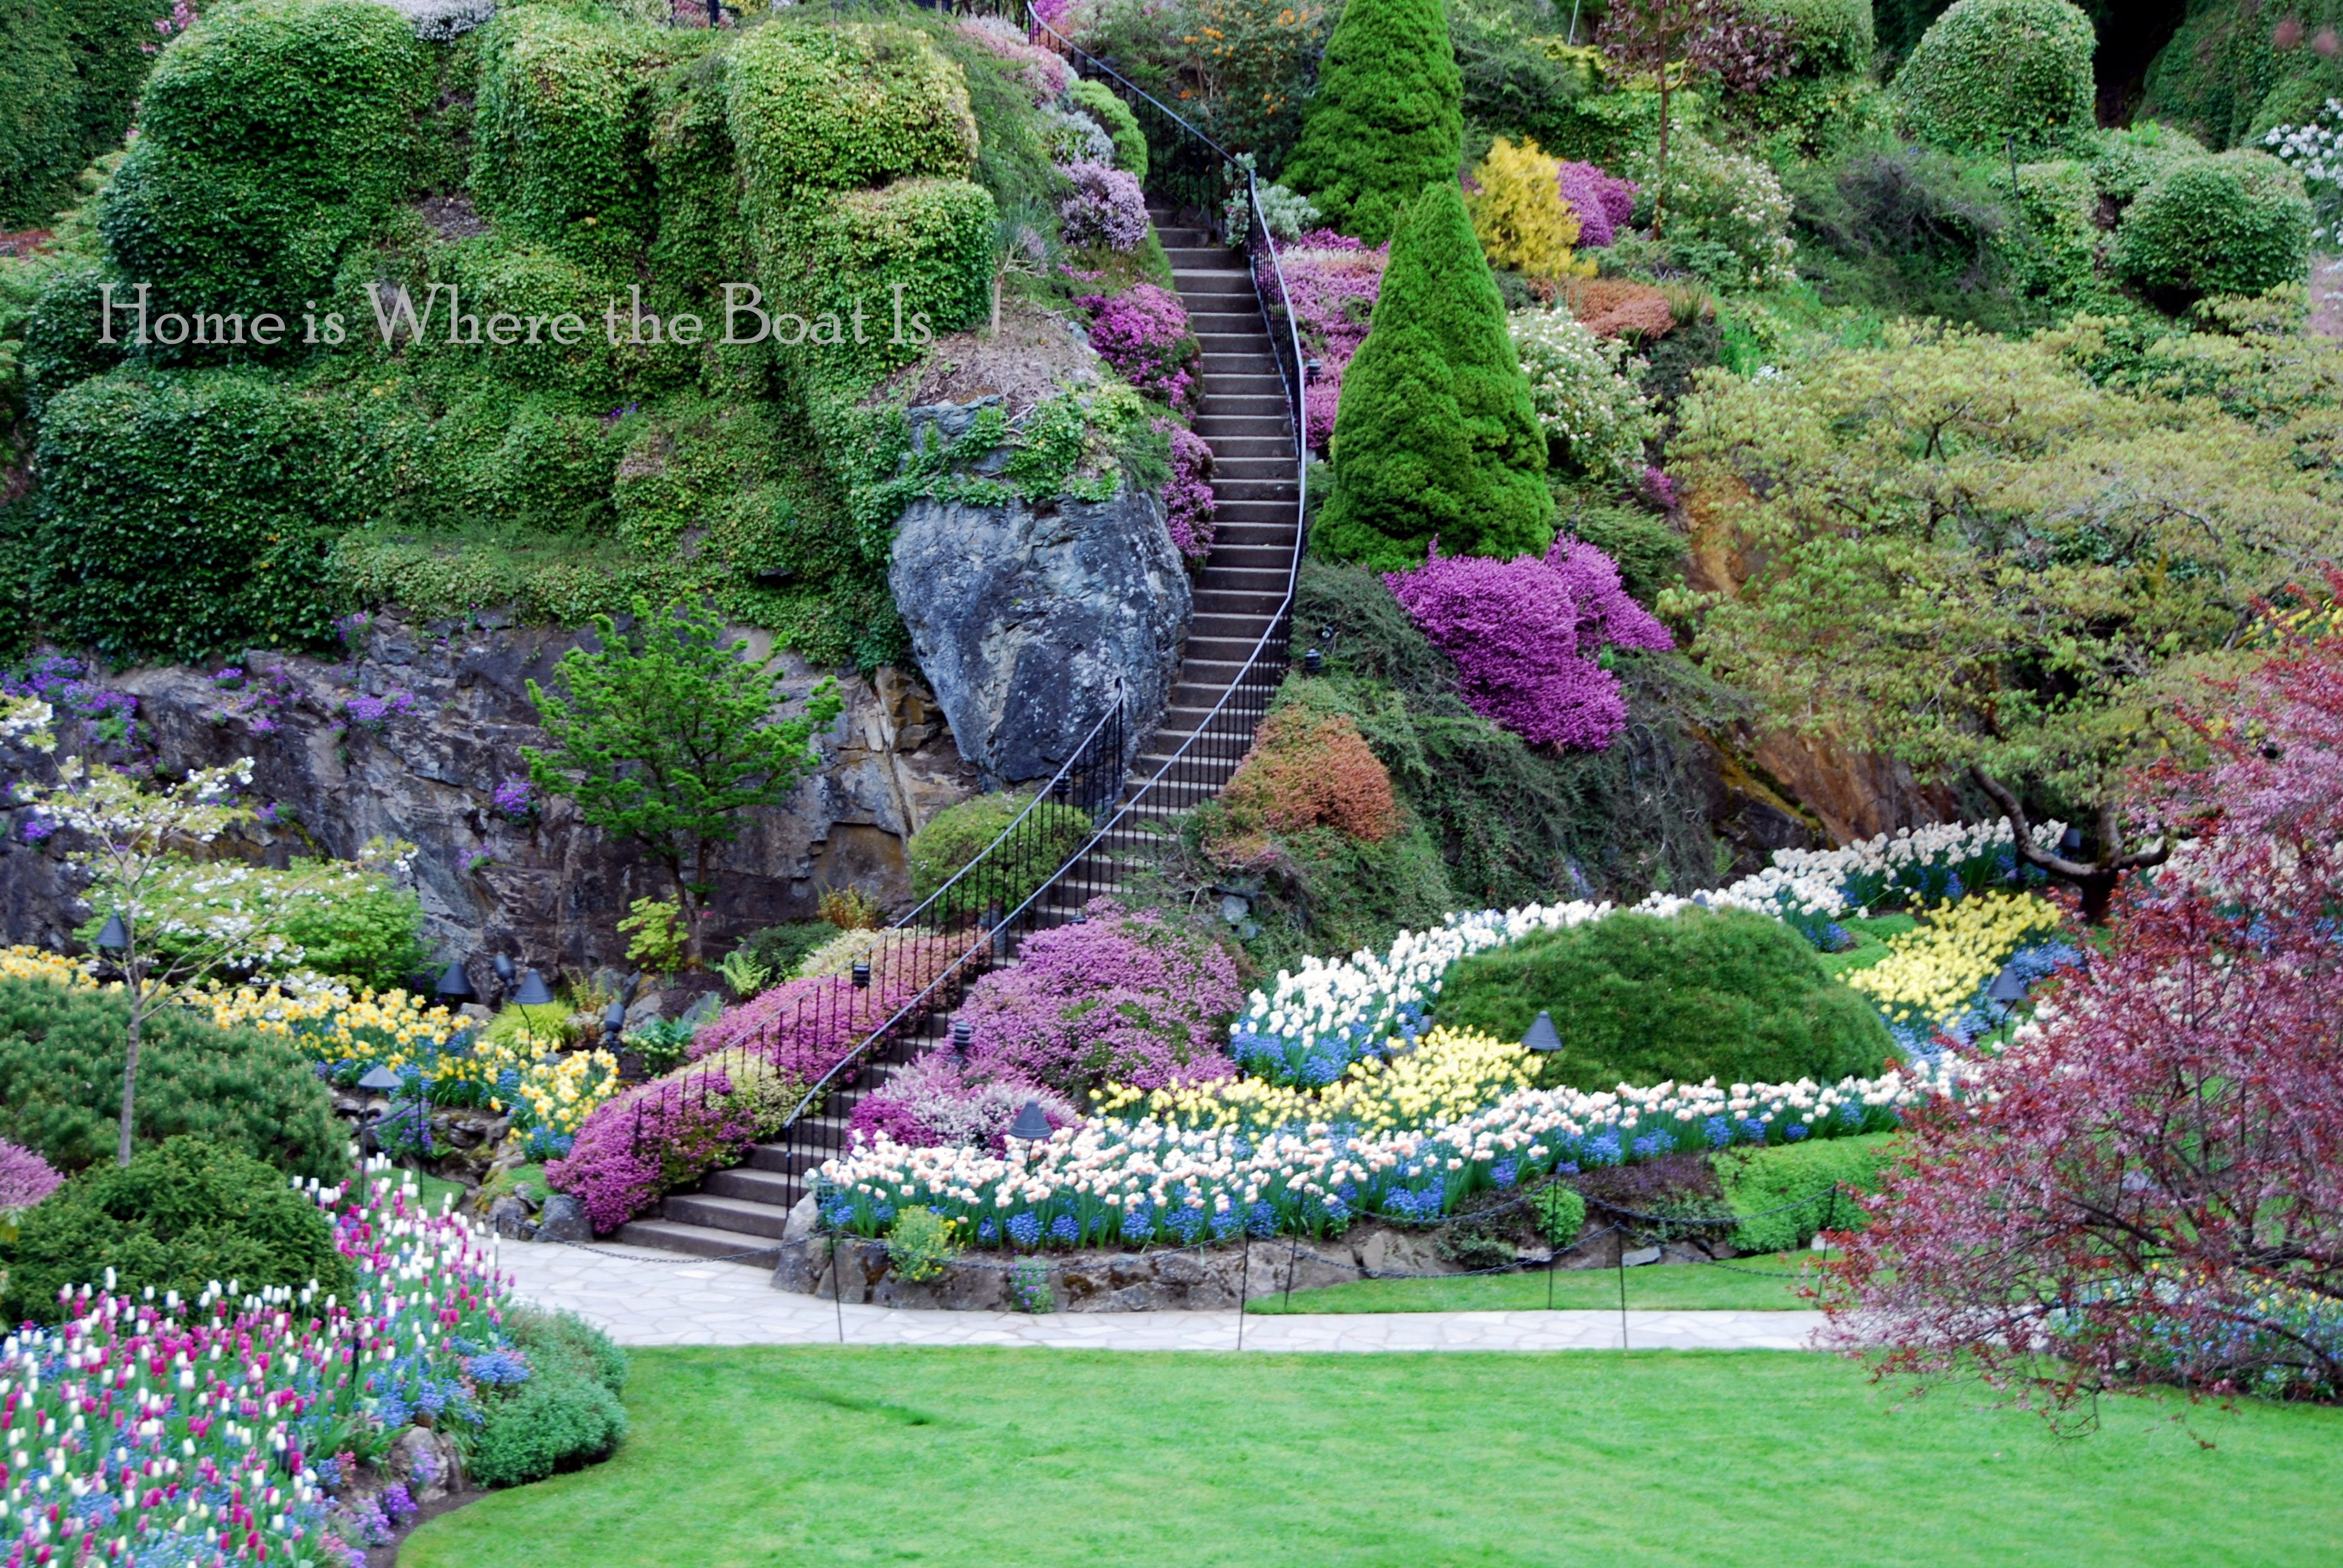 89df716e6c0a5363406fd9113a02bb67 - How Much Is Admission To Butchart Gardens